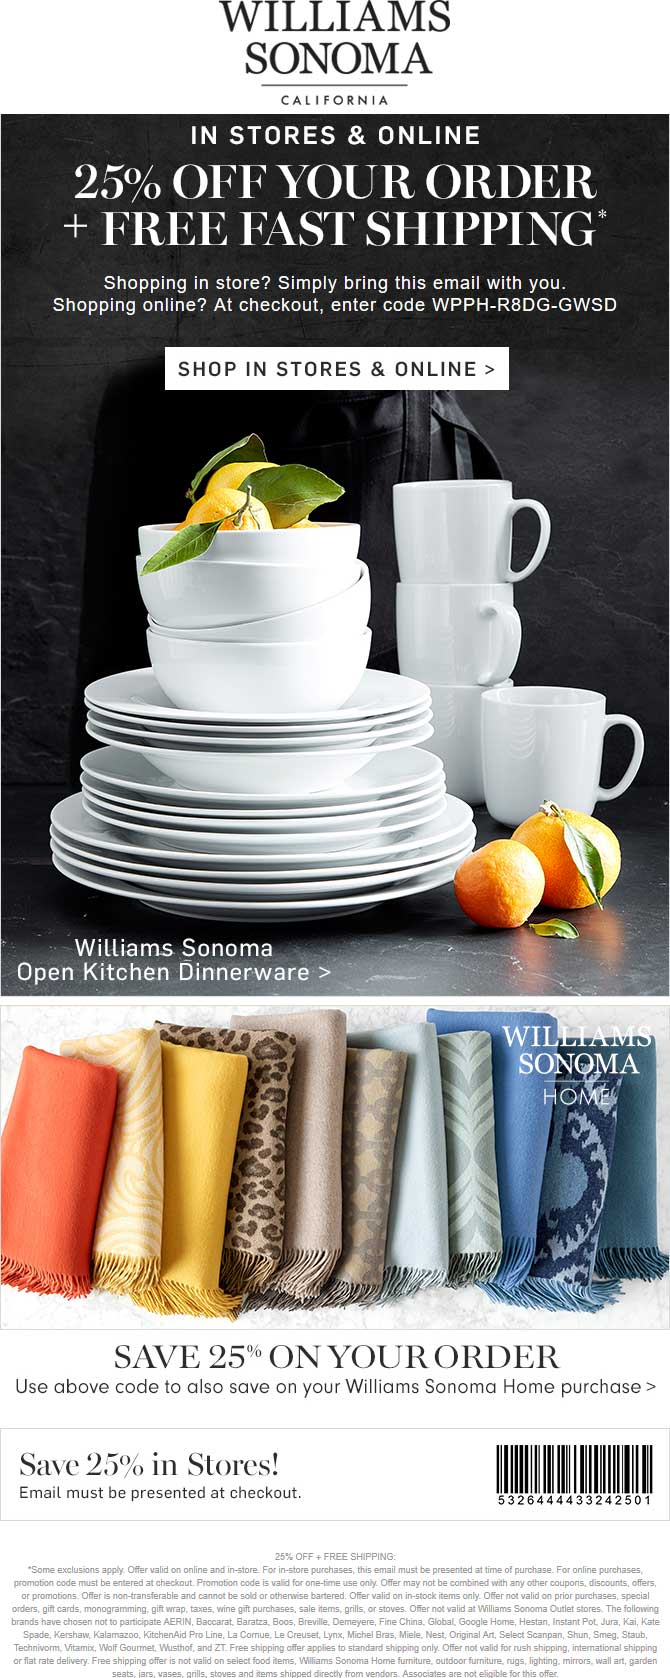 Williams Sonoma Coupon December 2018 25% off at Williams Sonoma, or online via promo code WPPH-R8DG-GWSD